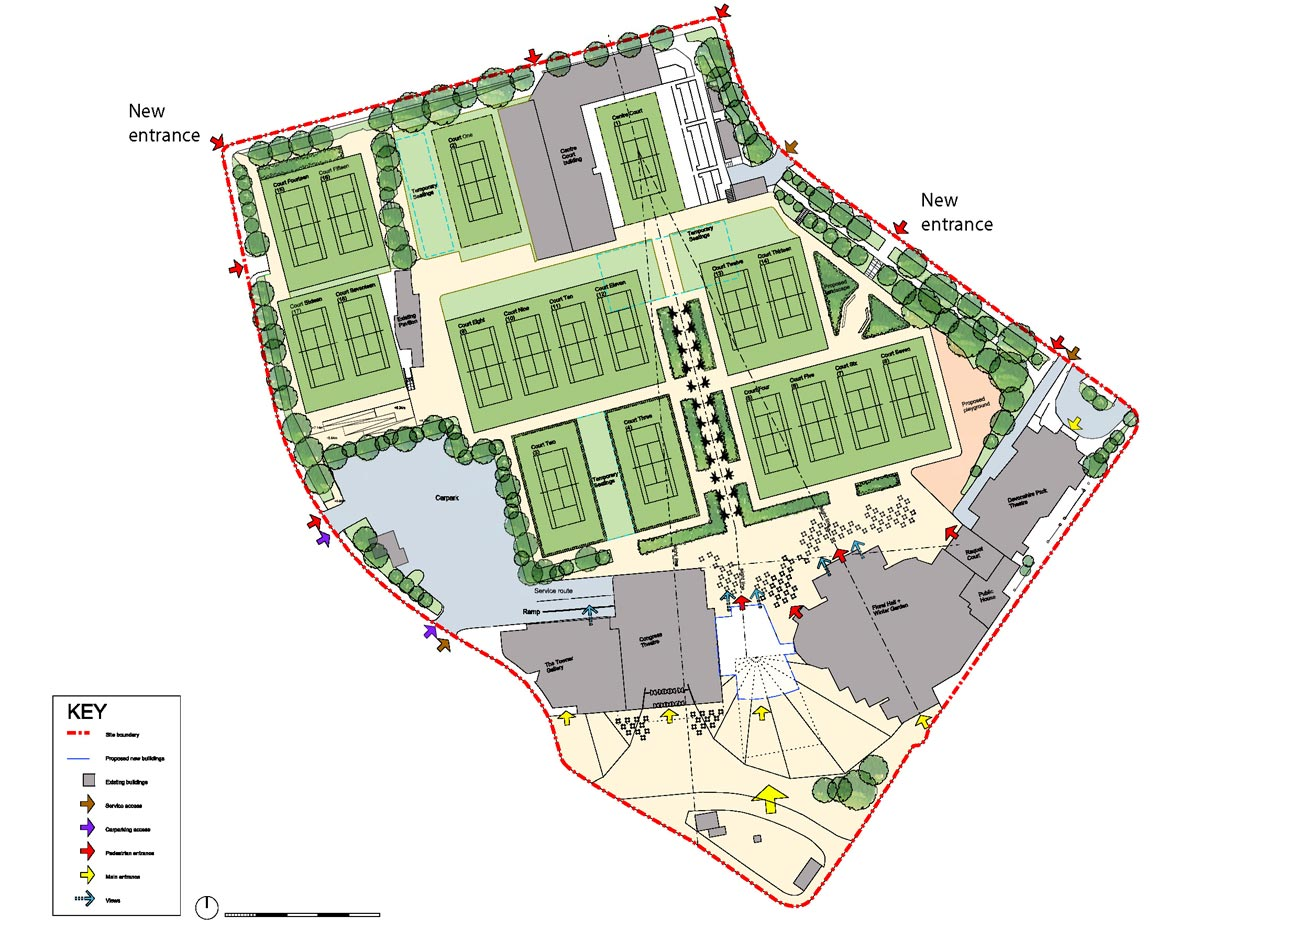 access site plan - Devonshire Park by Marks Barfield Architects